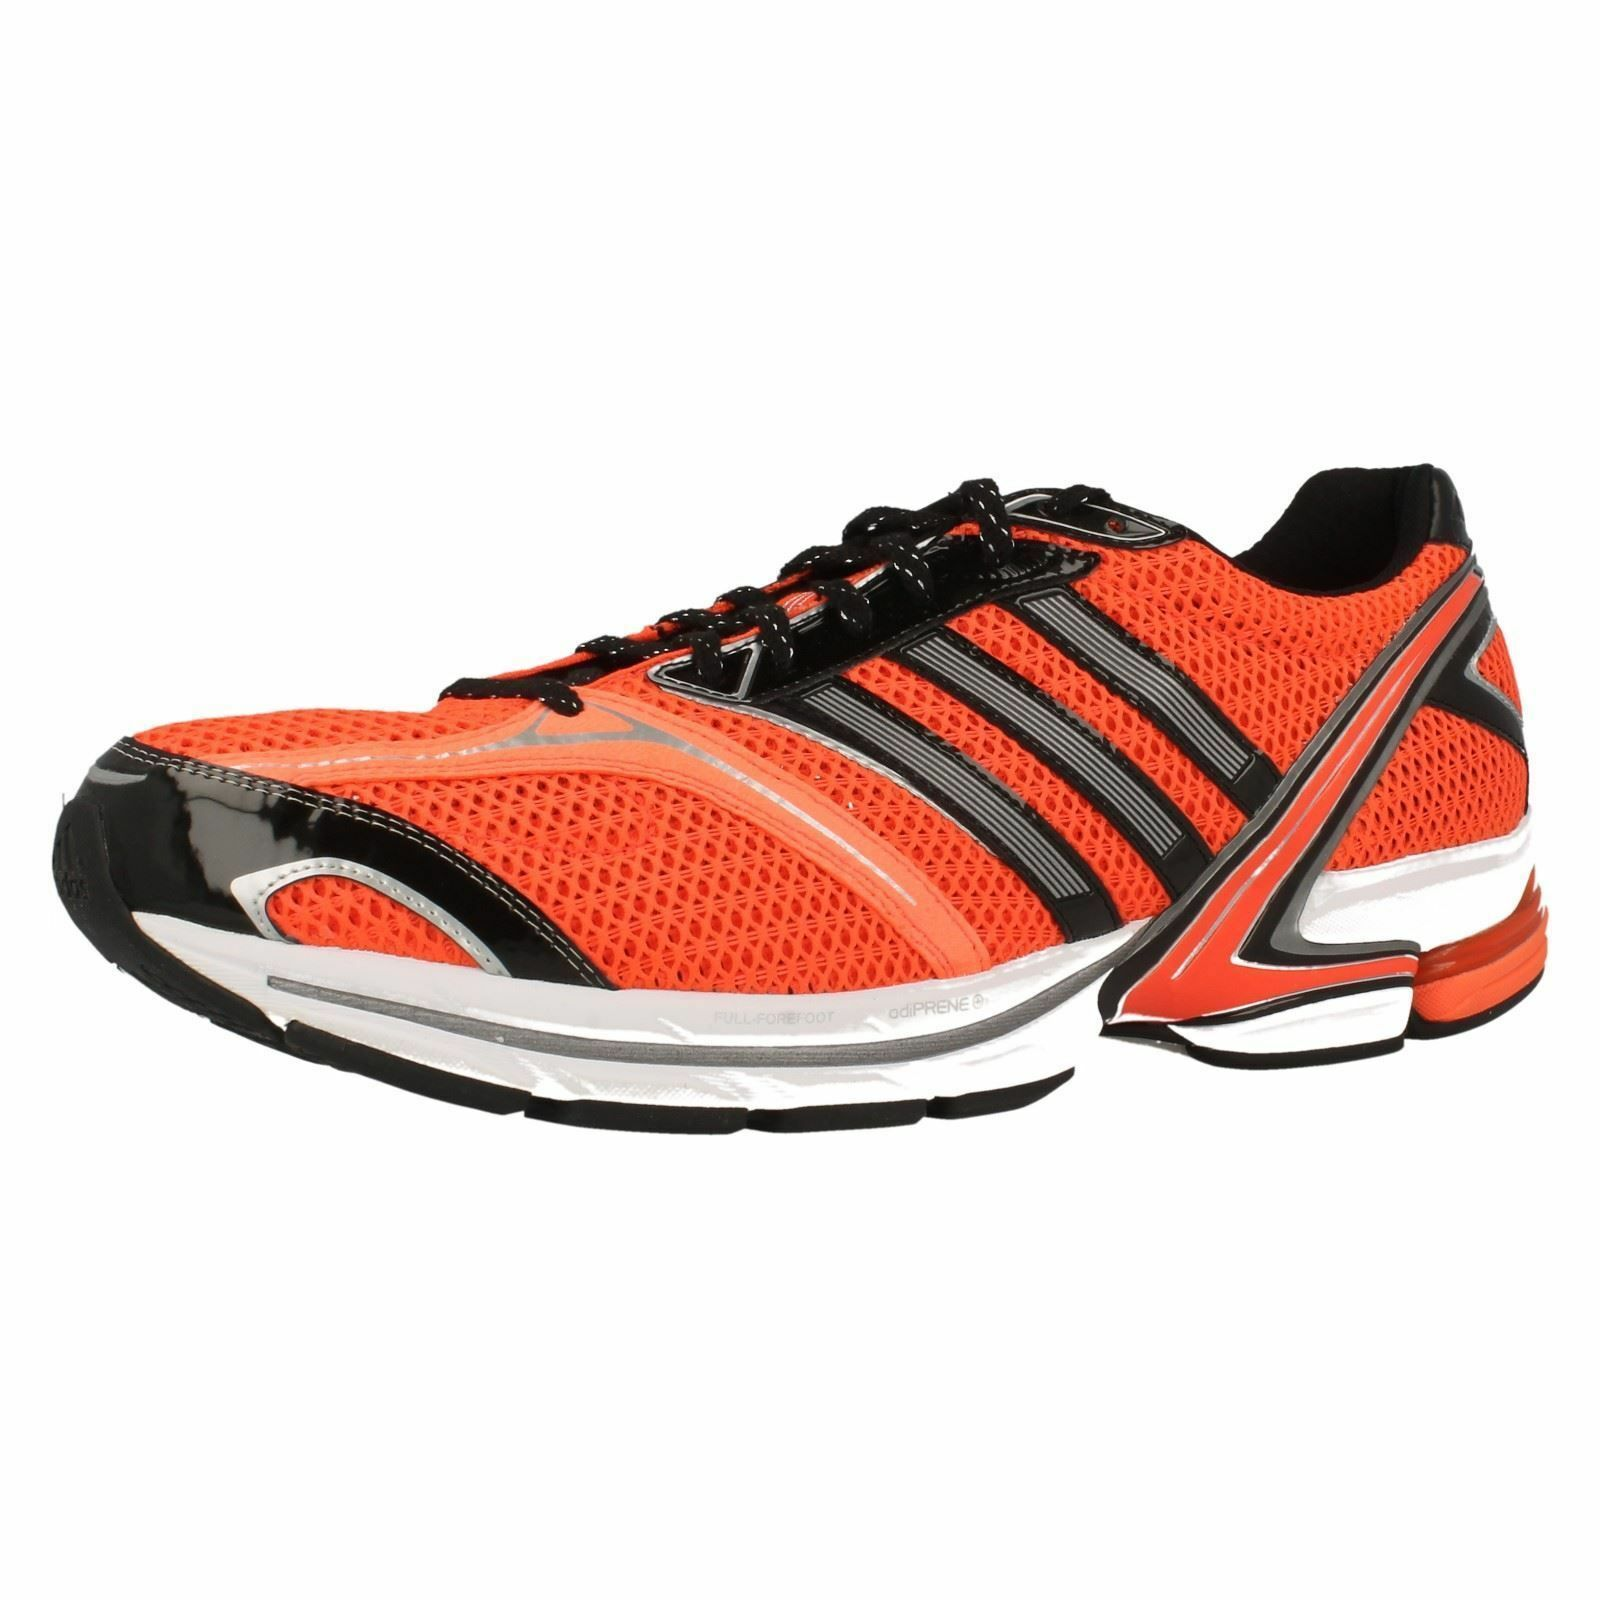 Mens Adidas Orange/Black Running Trainers 'Adizero Tempo 4M'